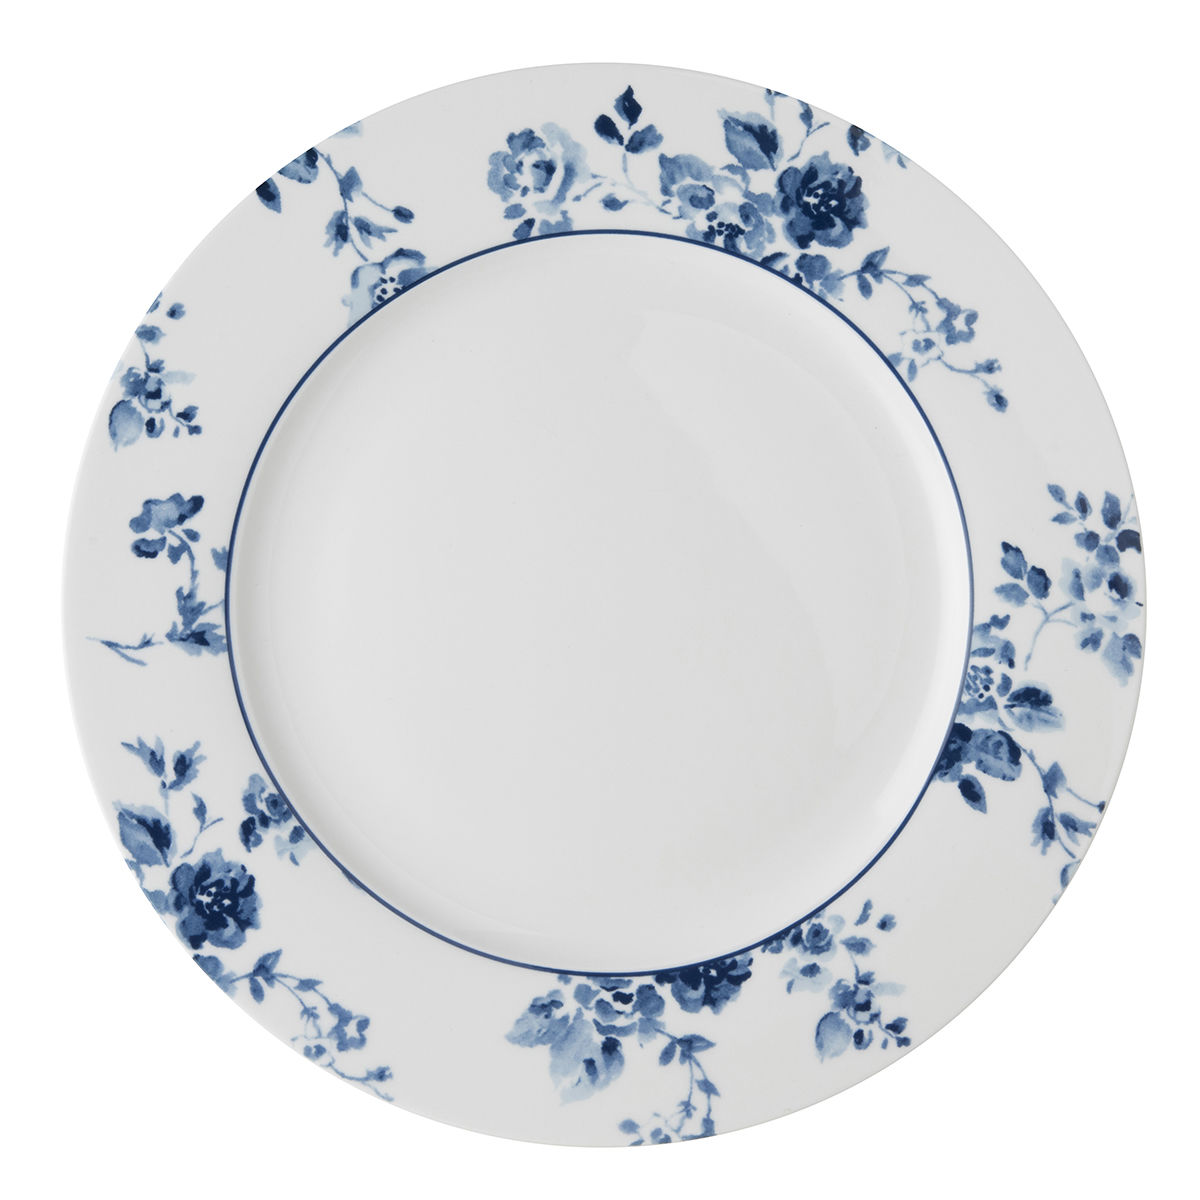 "Laura Ashley 10.5"" Plate China Rose - product images  of"